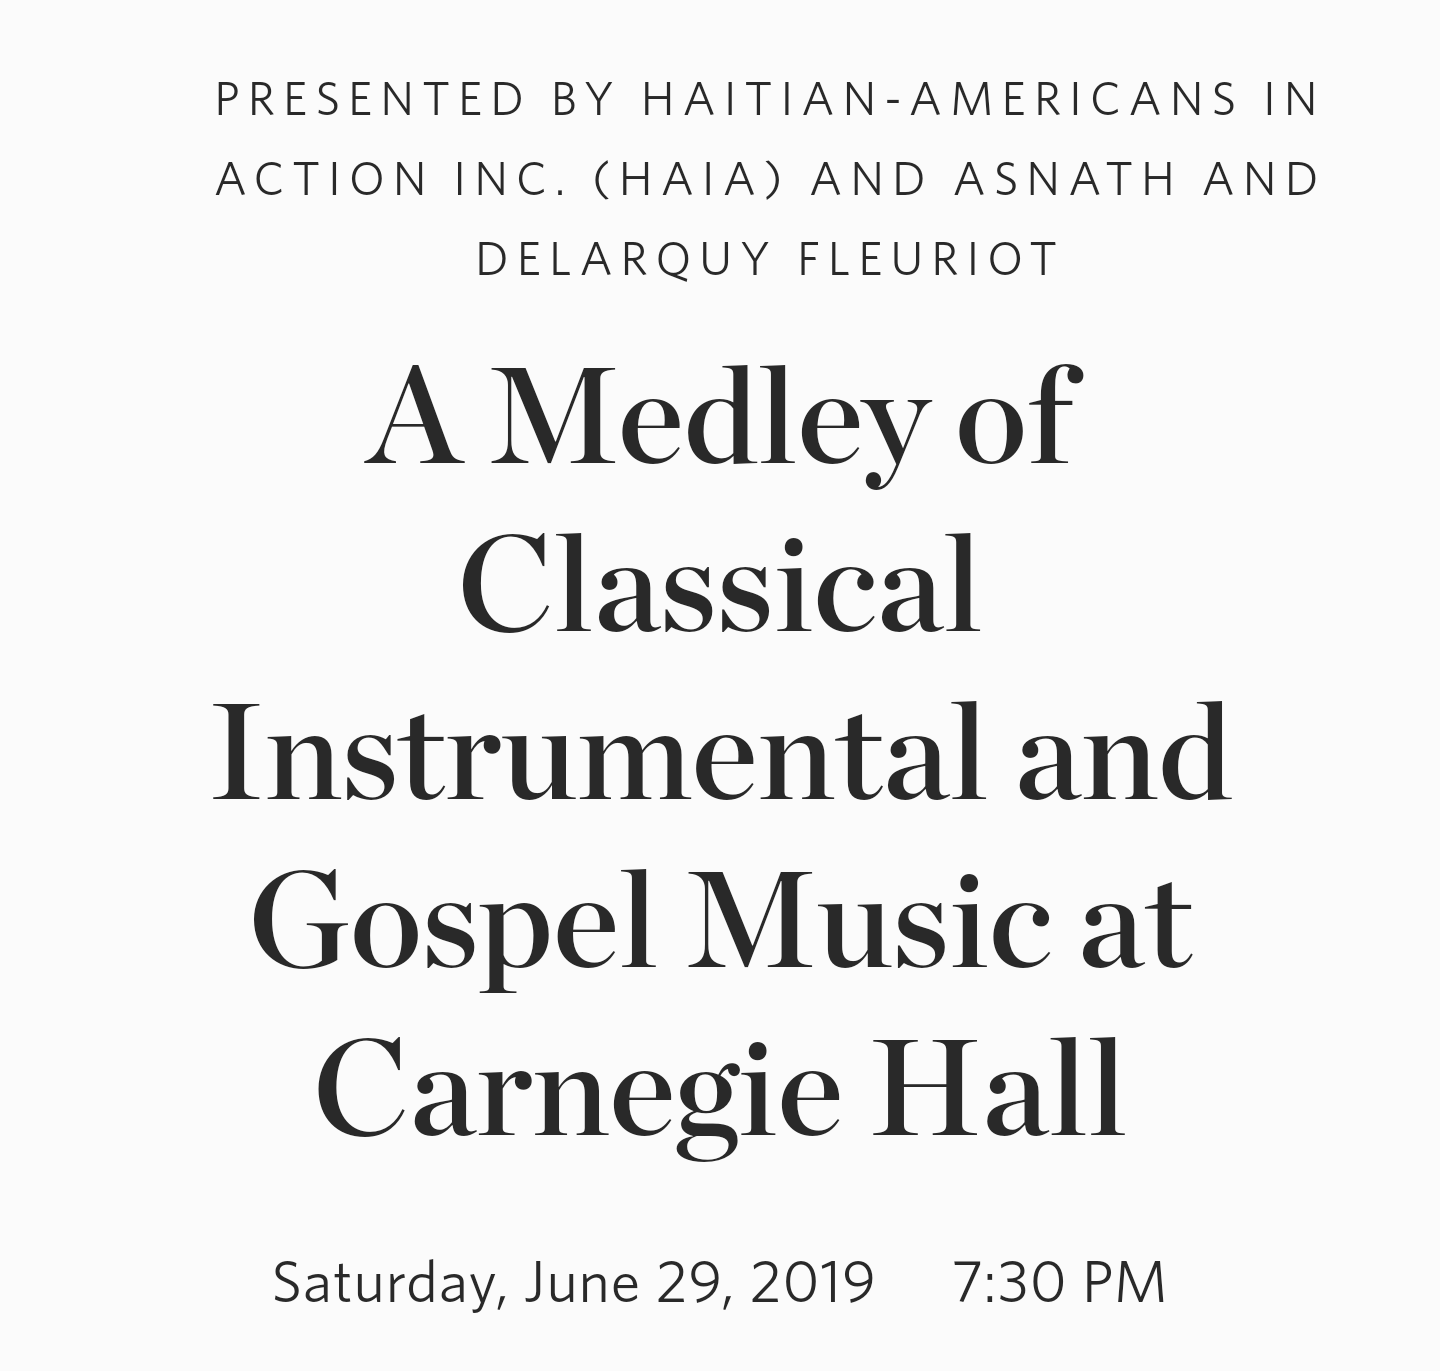 CARNEGIE HALL PREMIERE!: A Medley of Classical and Gospel Music